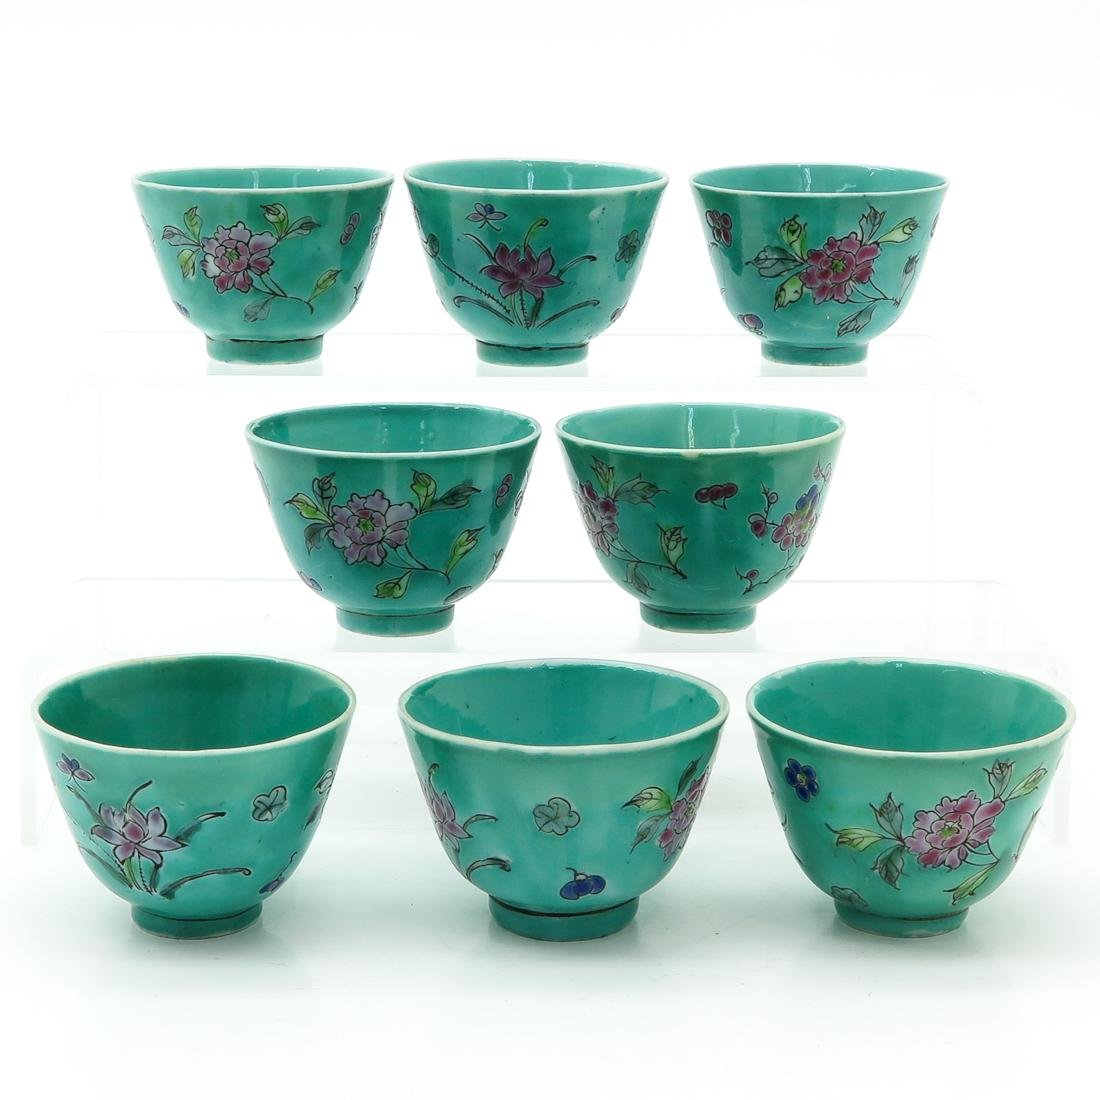 Lot of 8 Cups